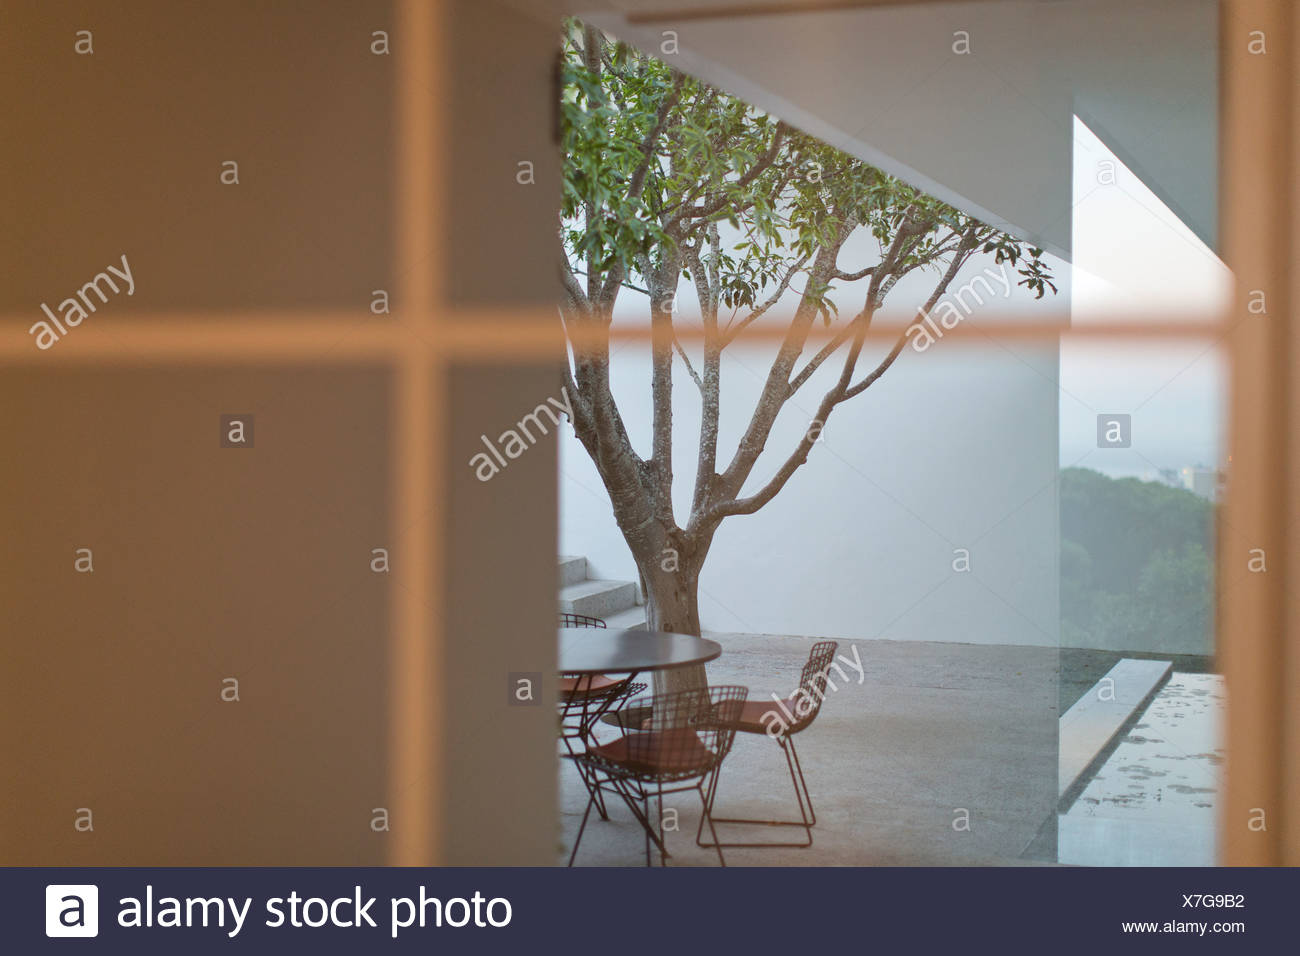 Table and chairs in courtyard - Stock Image